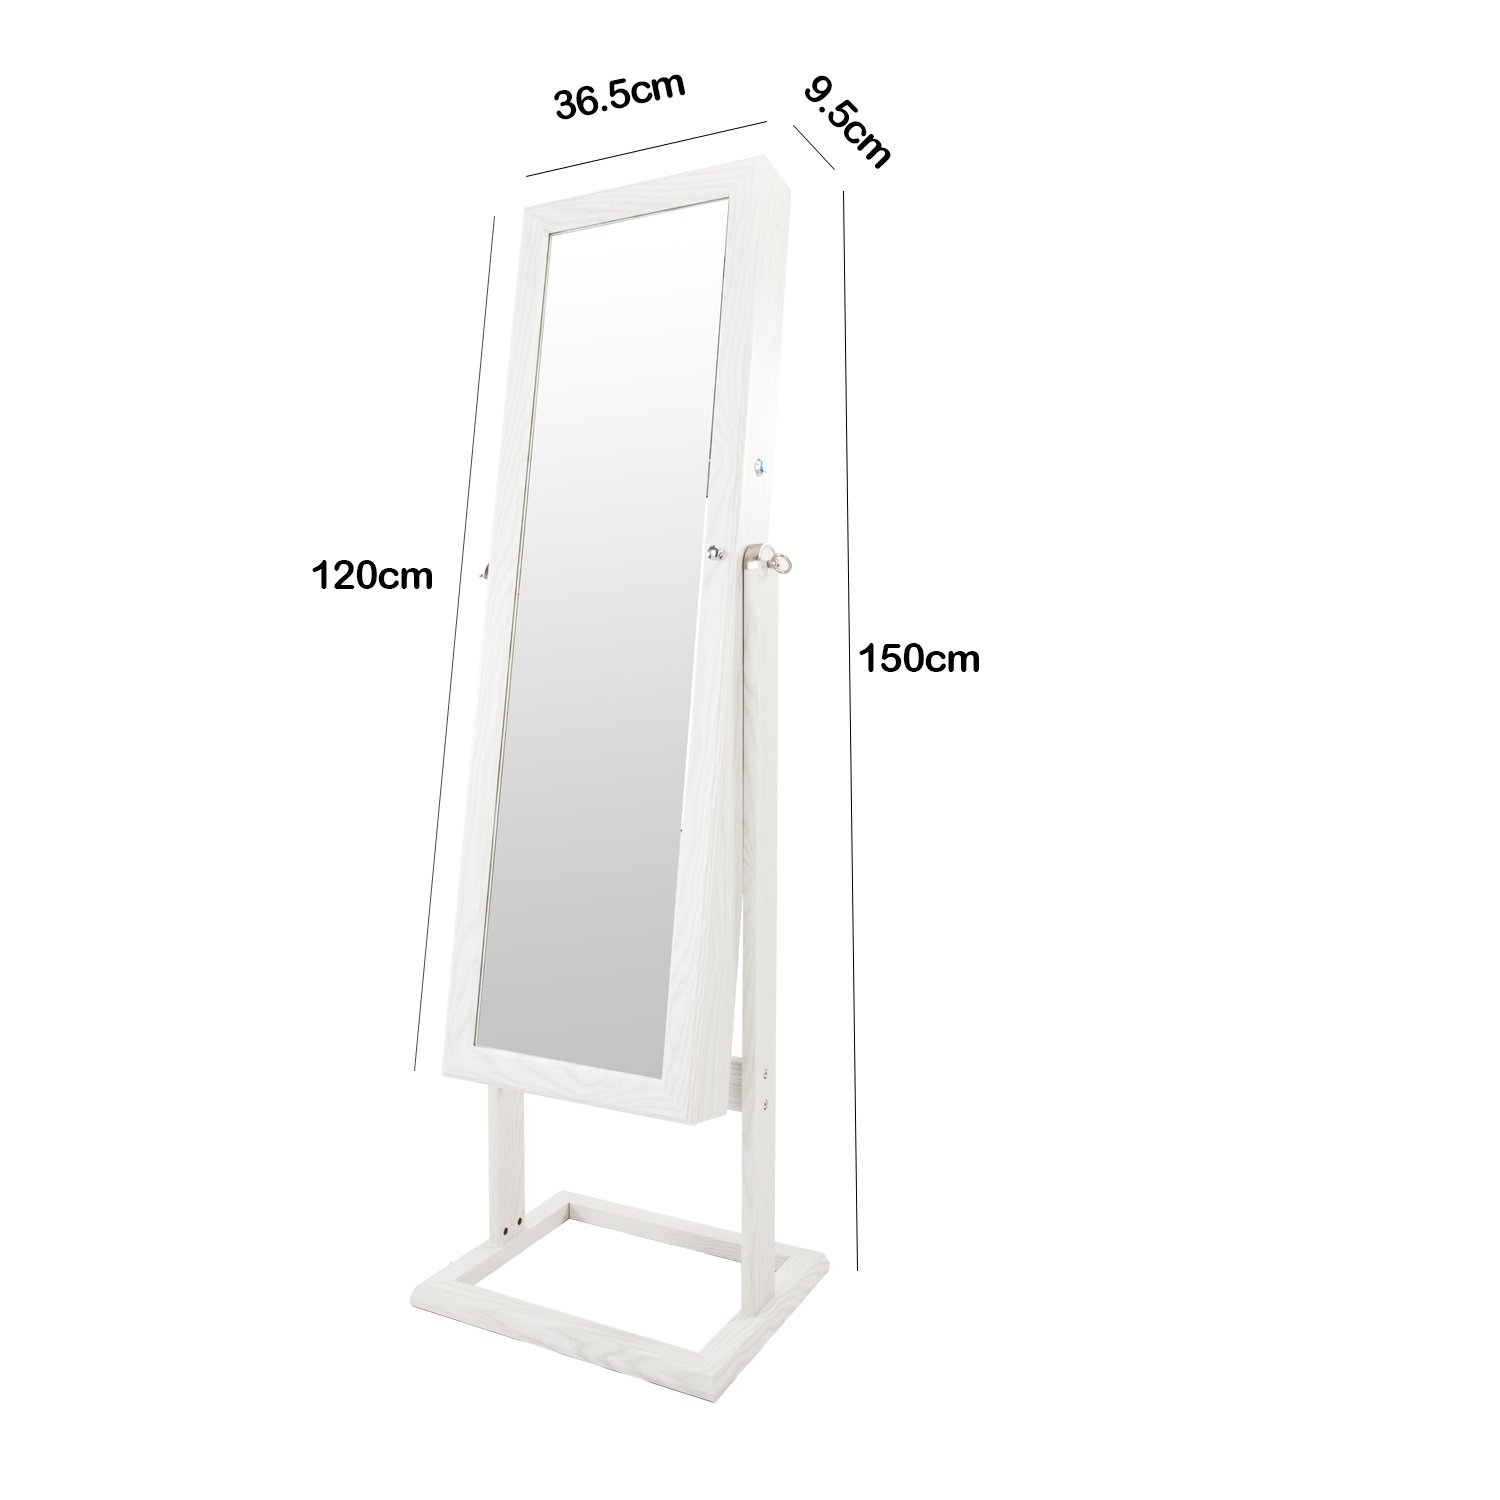 Bonnlo Jewelry Armoire Stable Square Stand with 6 LEDs with 4 Adjustable Angle Tilting, Well Packed by styrofoam & Stiffer Covering, Lockable Heavy Duty Bedroom Make up Mirror Cabinet Organizer Closet by Bonnlo (Image #5)